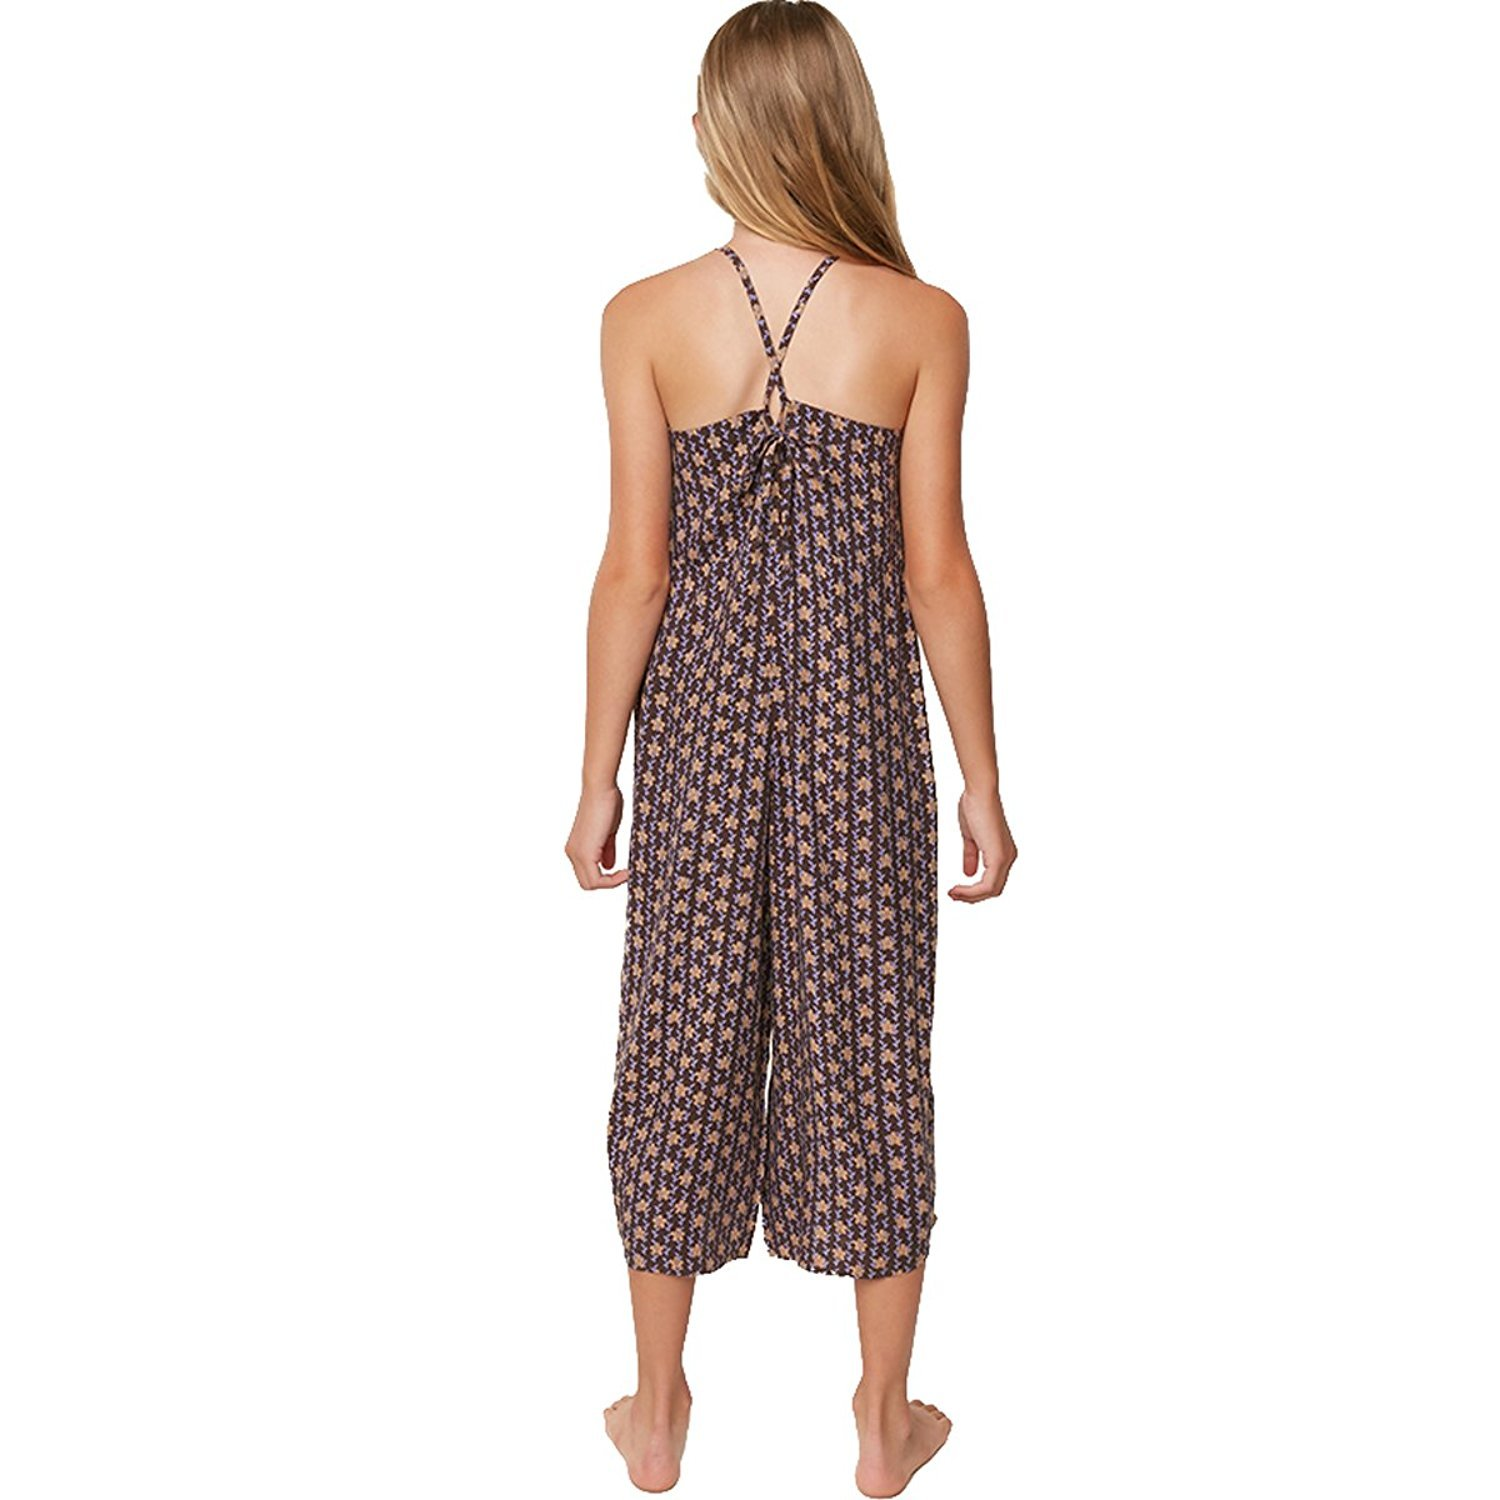 ONEILL Girls Big Darcy Pant Jumpsuit